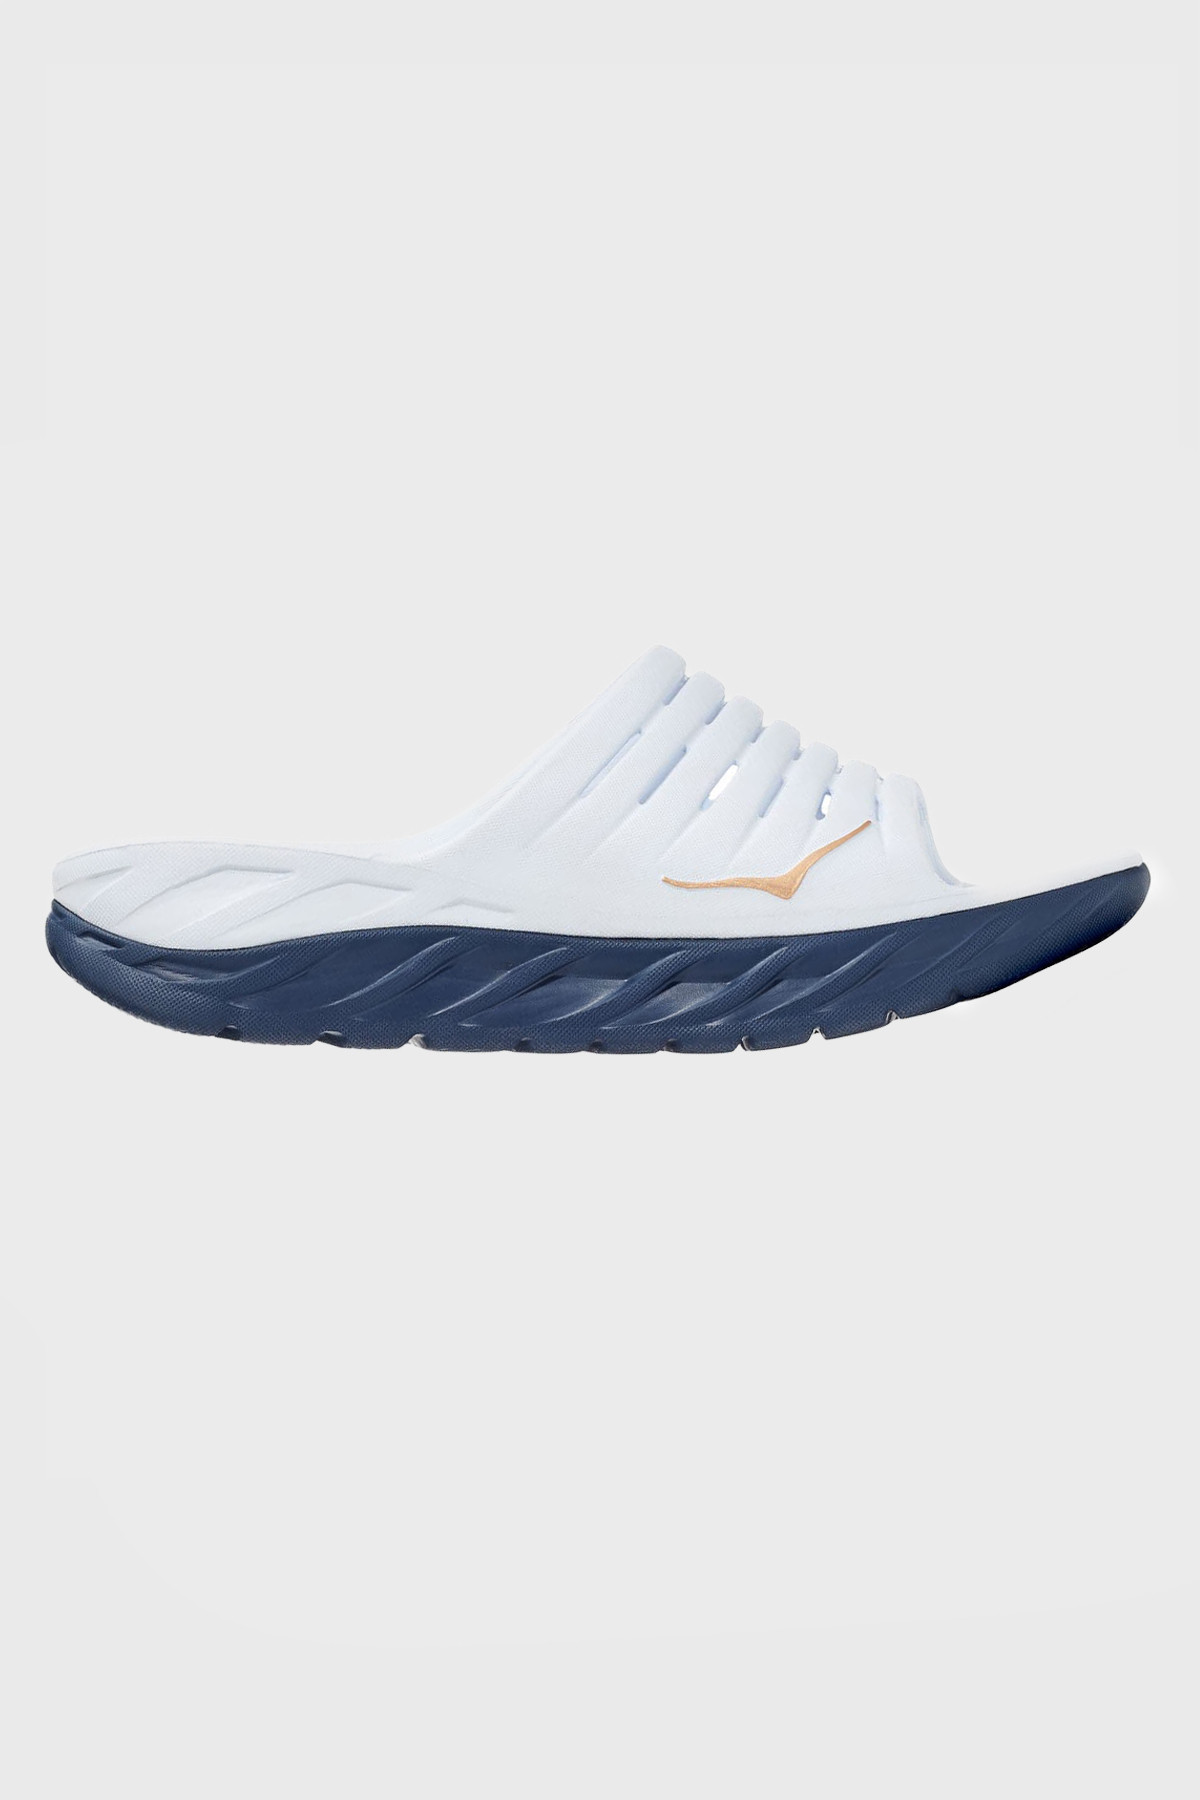 Hoka one one - Ora recovery Slide 2 - White